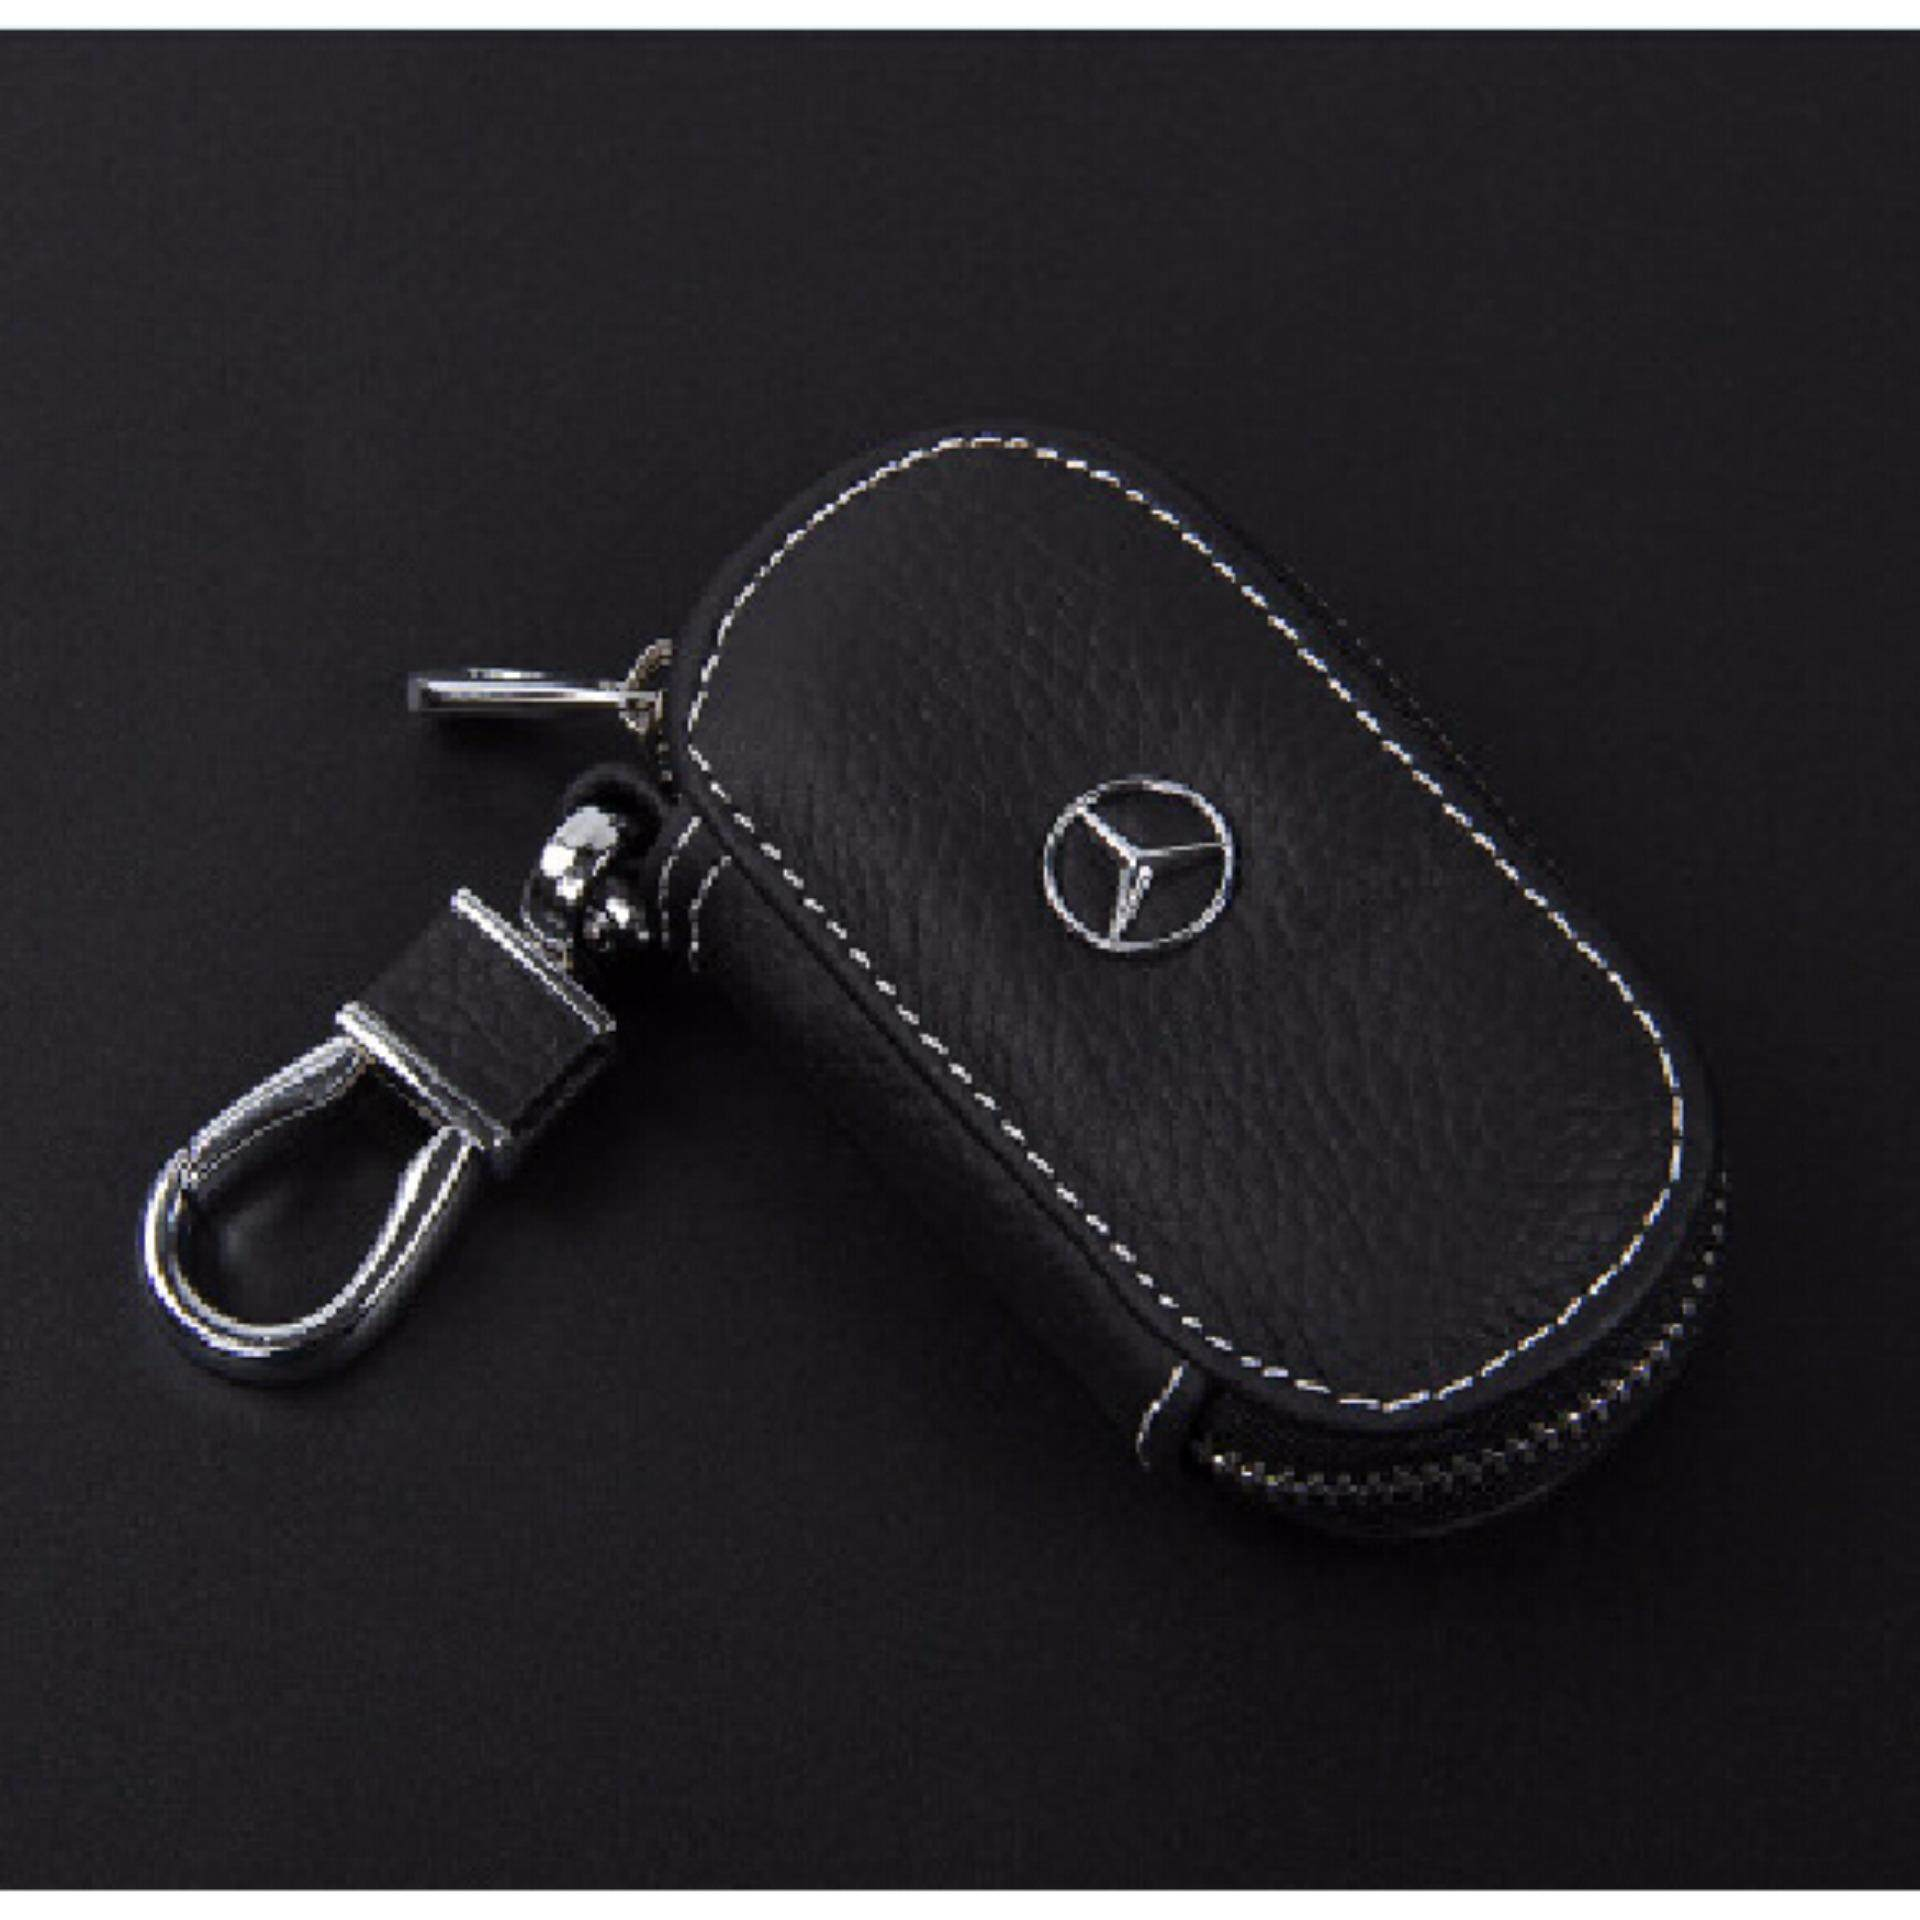 Best Rated 2018 New Luxury Style Leather Car Key Case Holder For Benz E300 E260 E200 Gle300 Gle350 Gle400 Gle450 Gle500 For Benz Key Black Intl